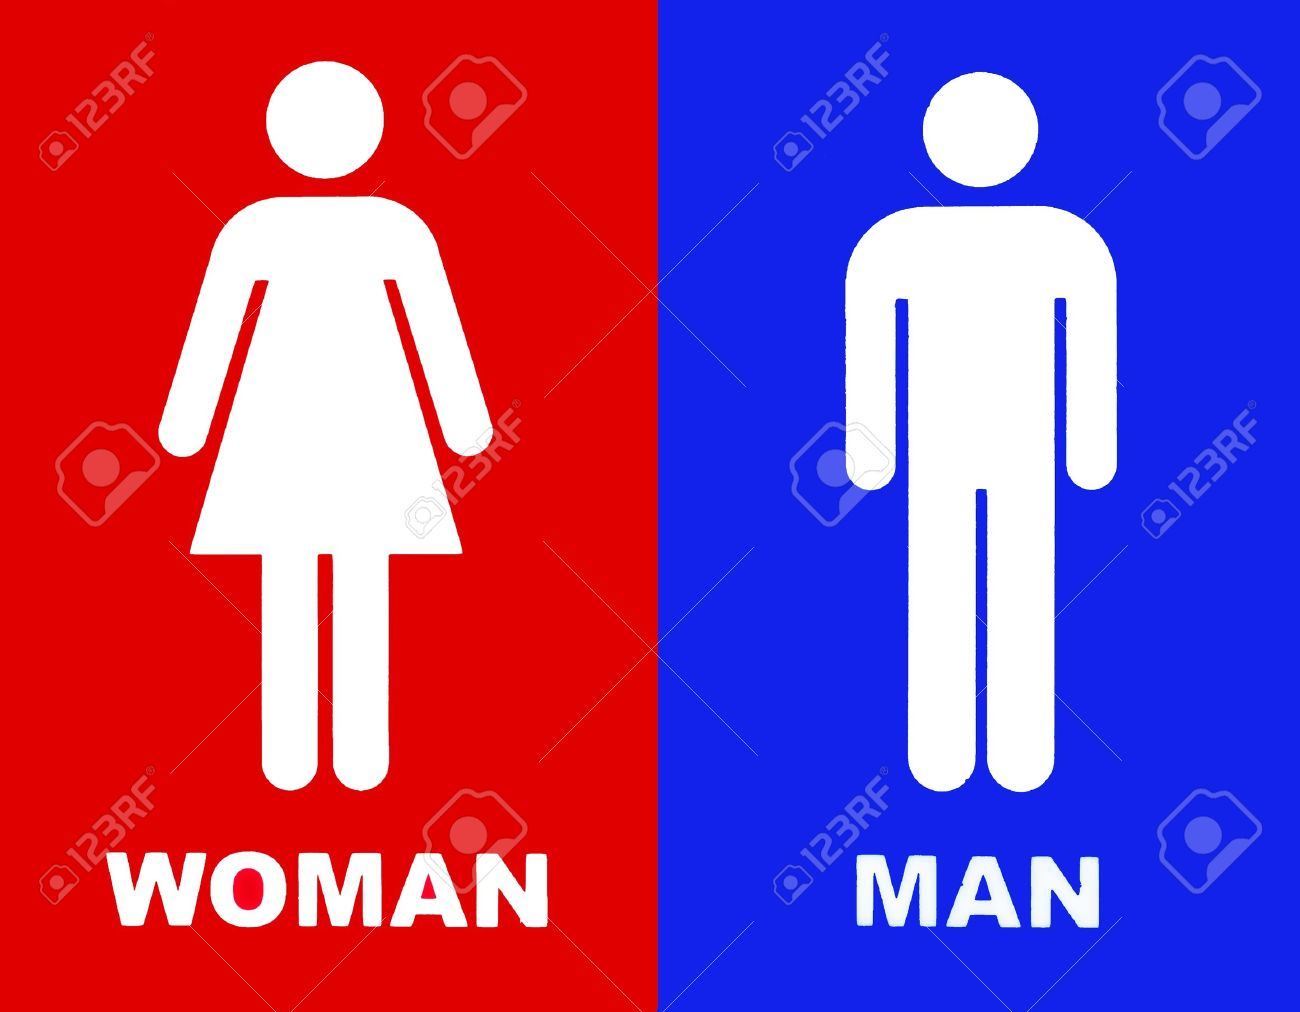 Art of a toilet sign in red and blue stock photo picture and art of a toilet sign in red and blue stock photo 15996838 biocorpaavc Choice Image